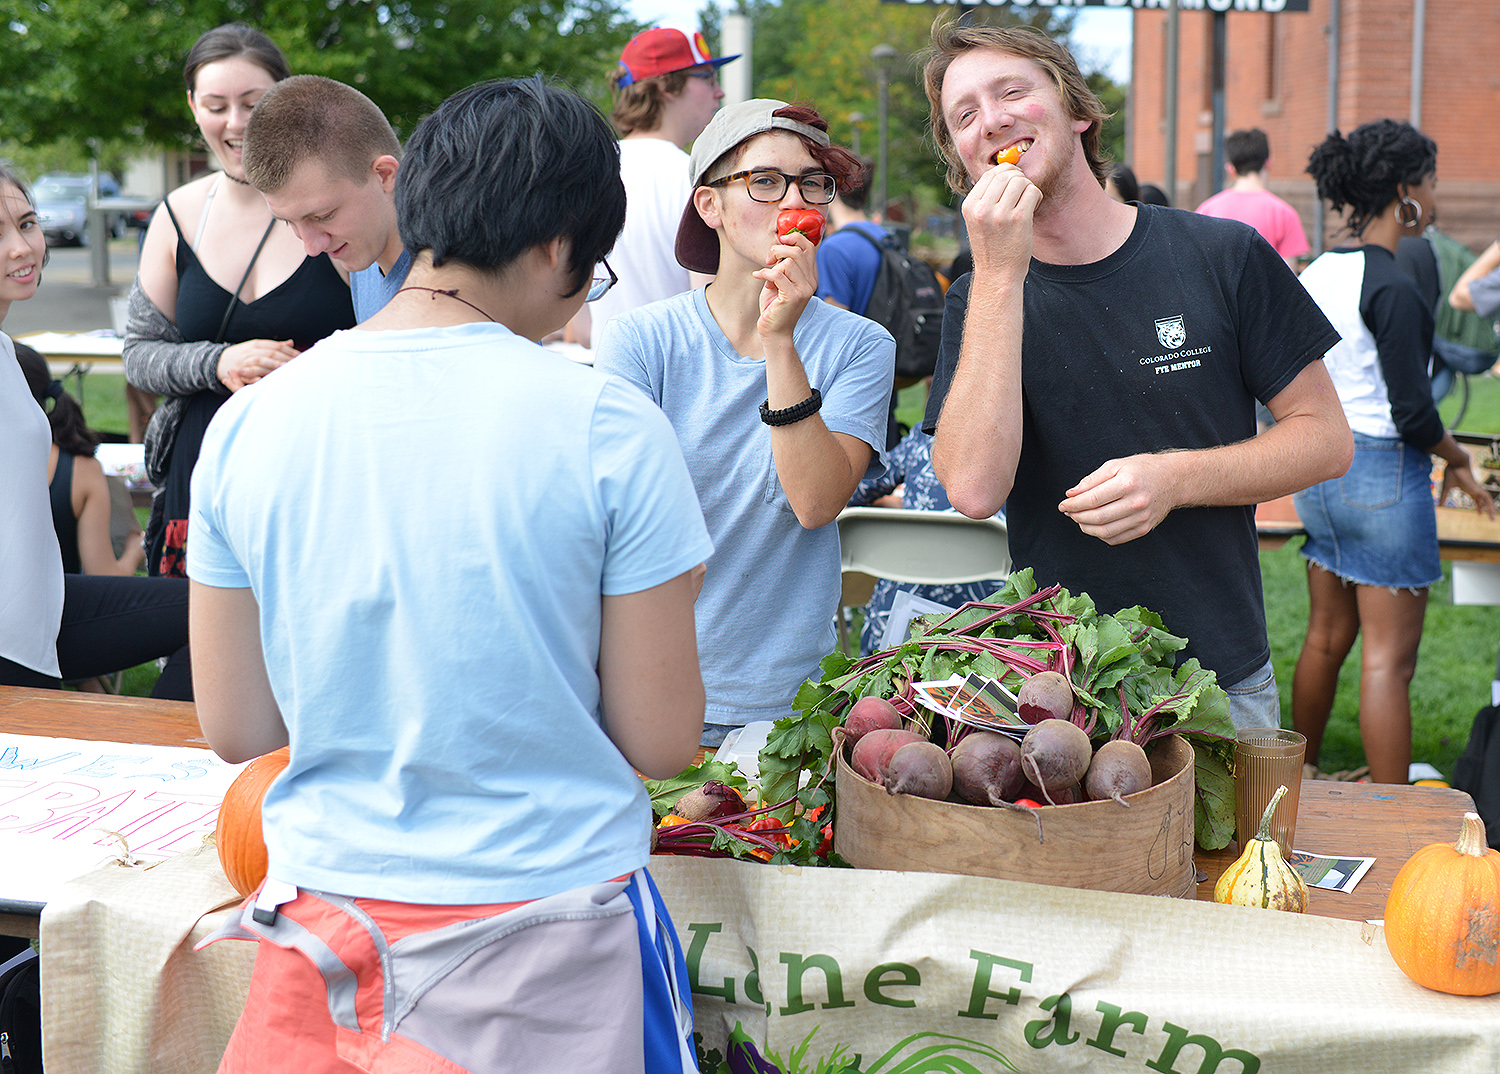 Long Lane Farm is Wesleyan's student-run organic farm, located at 281 Long Lane. Throughout the year, students grow and sell a variety of vegetables, fruits, herbs, and products. They host community events and programs such as PumpkinFest and the Middletown Food Project.